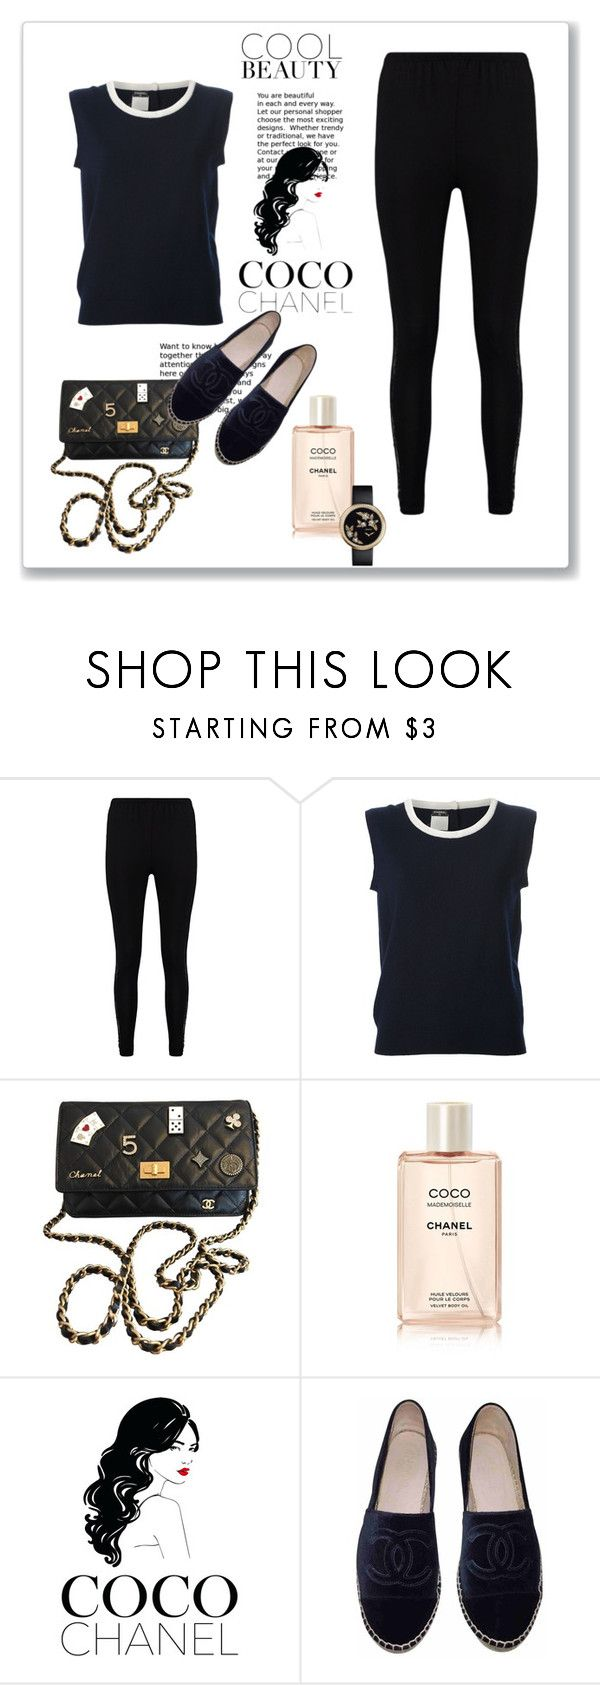 """""""coco chanel"""" by suga-r ❤ liked on Polyvore featuring Boohoo, Chanel and contestentry"""